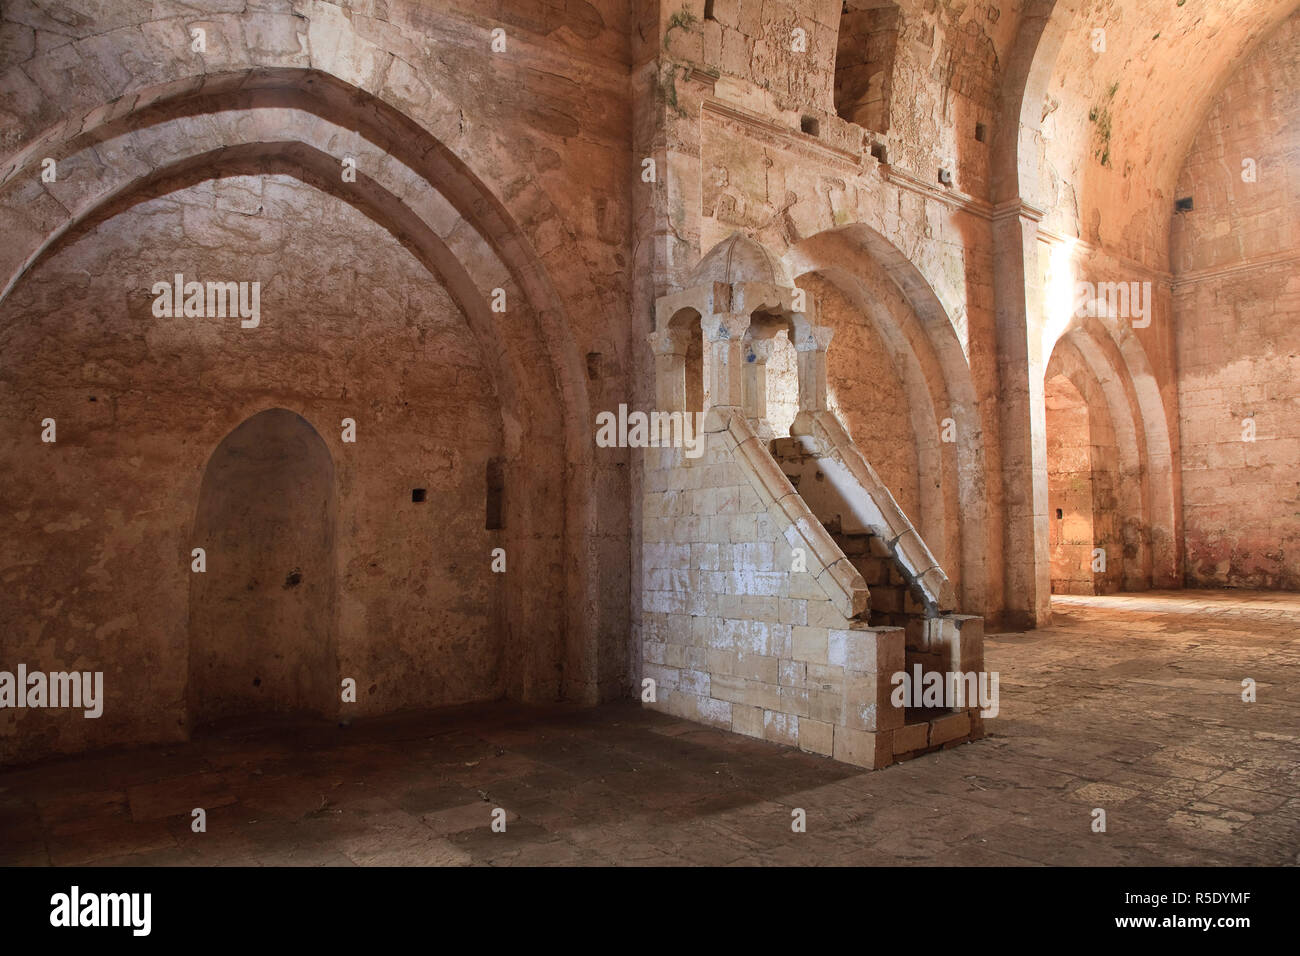 Syria, crusader's castle of Krak Des Chevaliers (Qala'at al Hosn), a UNESCO Site, Christian Chapel converted into a Mosque with islamic minbar (pulpit) - Stock Image